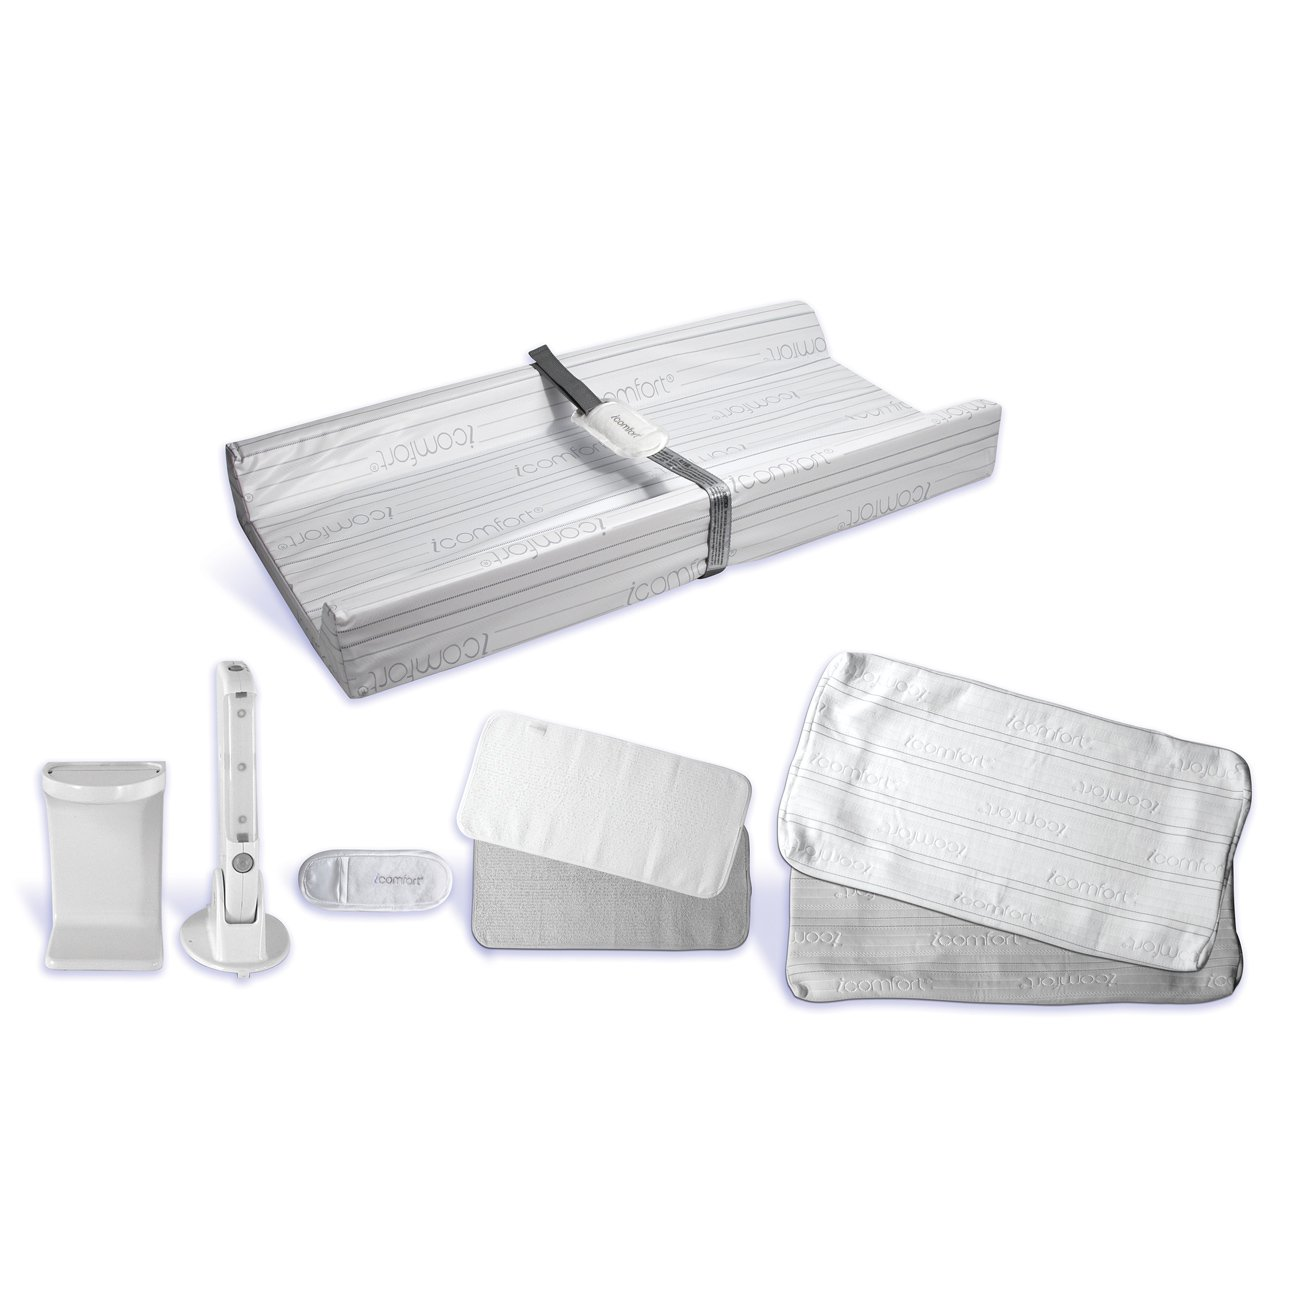 Serta iComfort Premium Baby Contoured Changing Pad and Cover Special Bundle: Dual Effect Gel Memory Foam Change Pad, 2 Change Pad Covers, 2 Change Pad Liners, Fabric Pinch Guard, Motion Active Night Light Babys jurney 3411